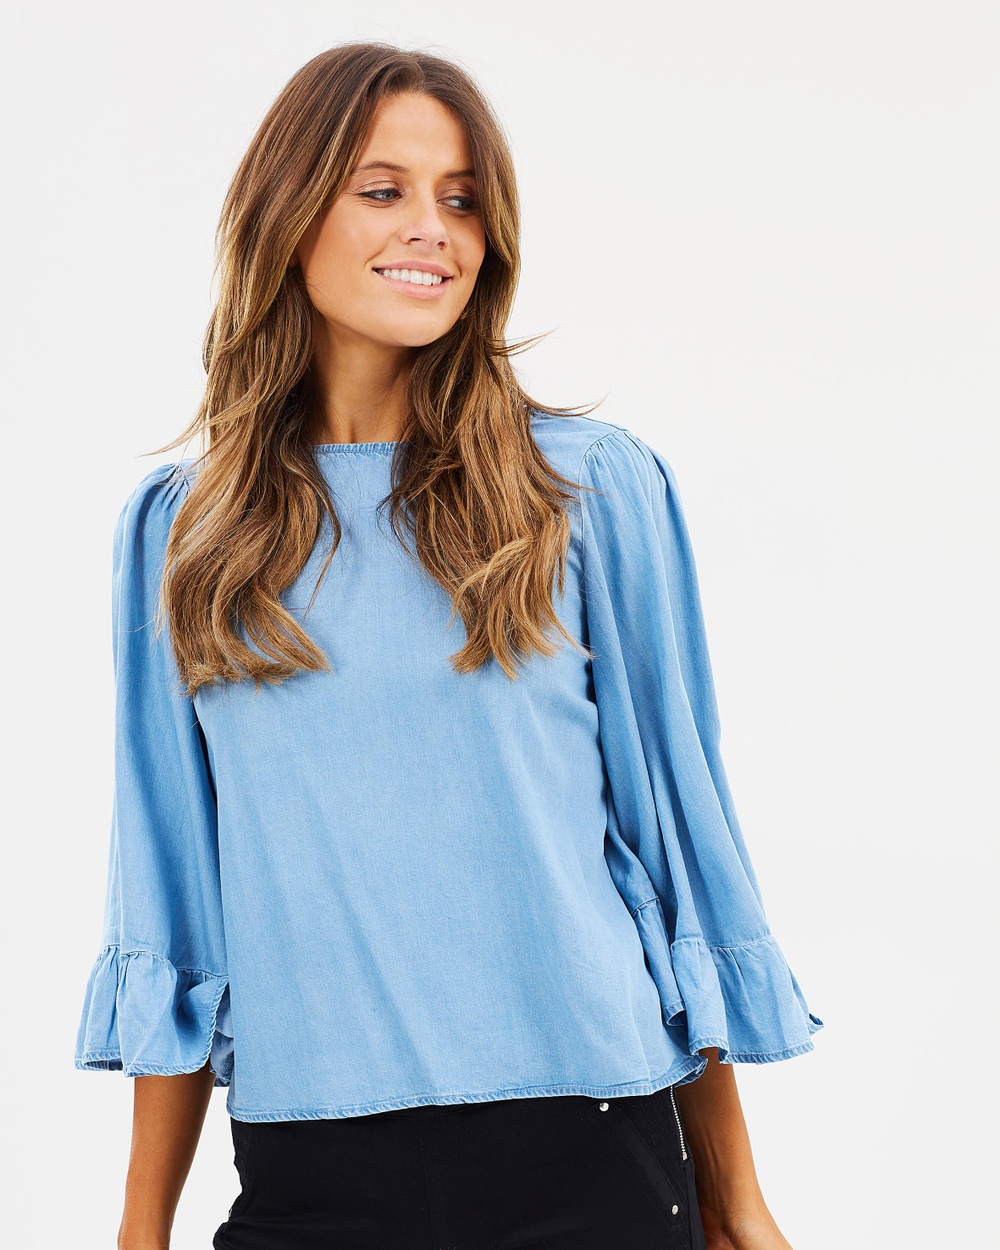 ONLY Haley Big Sleeve Frill Denim Top Tops Light Blue Denim Haley Big Sleeve Frill Denim Top